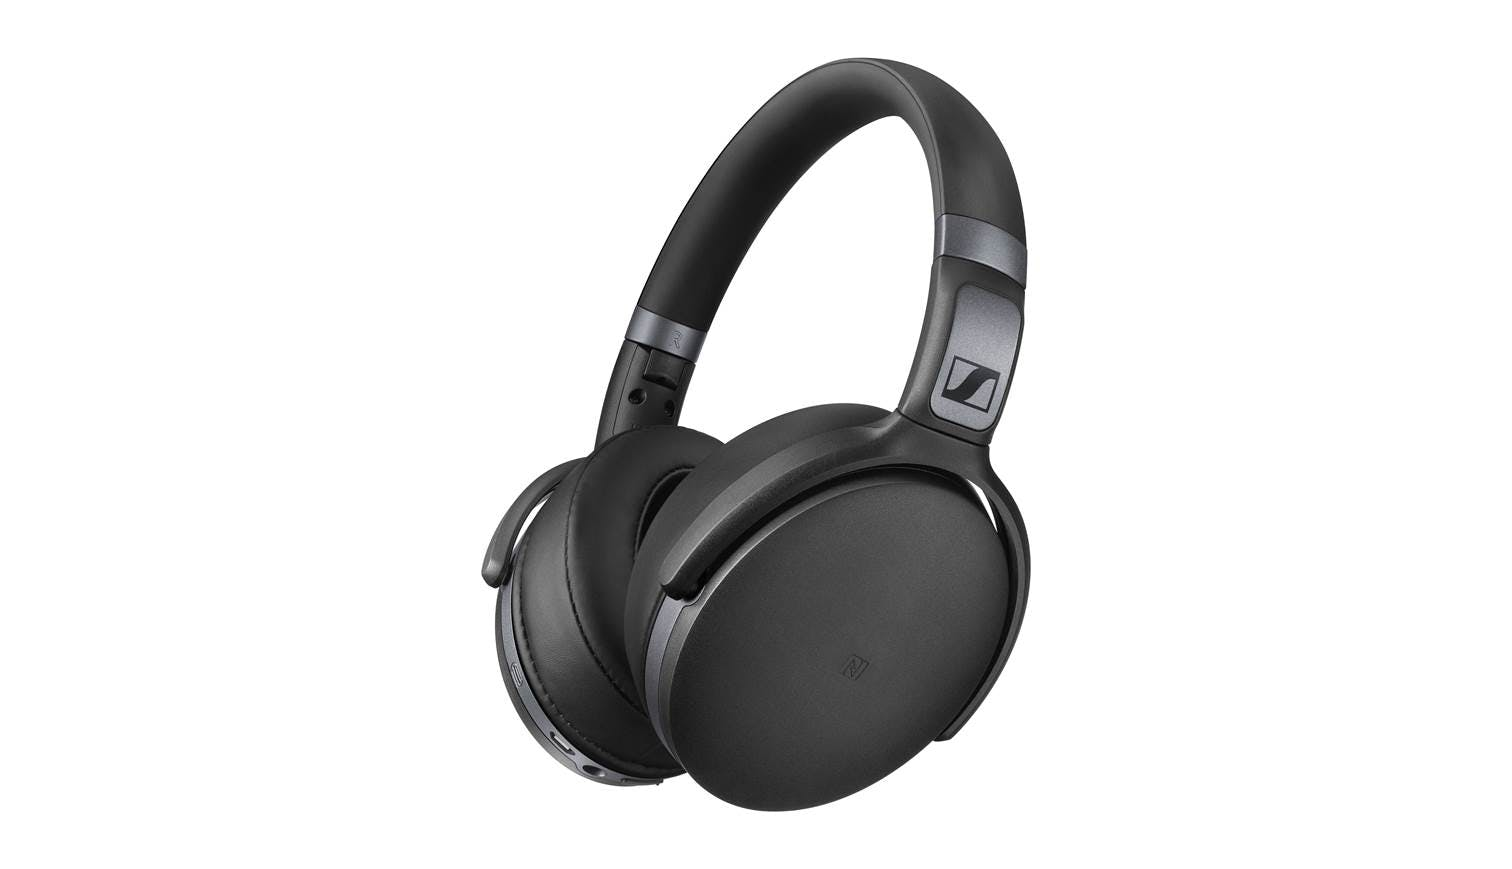 7608884011d Sennheiser HD 4.40 BT Wireless Over Ear Headphone - Black | Harvey Norman  Singapore